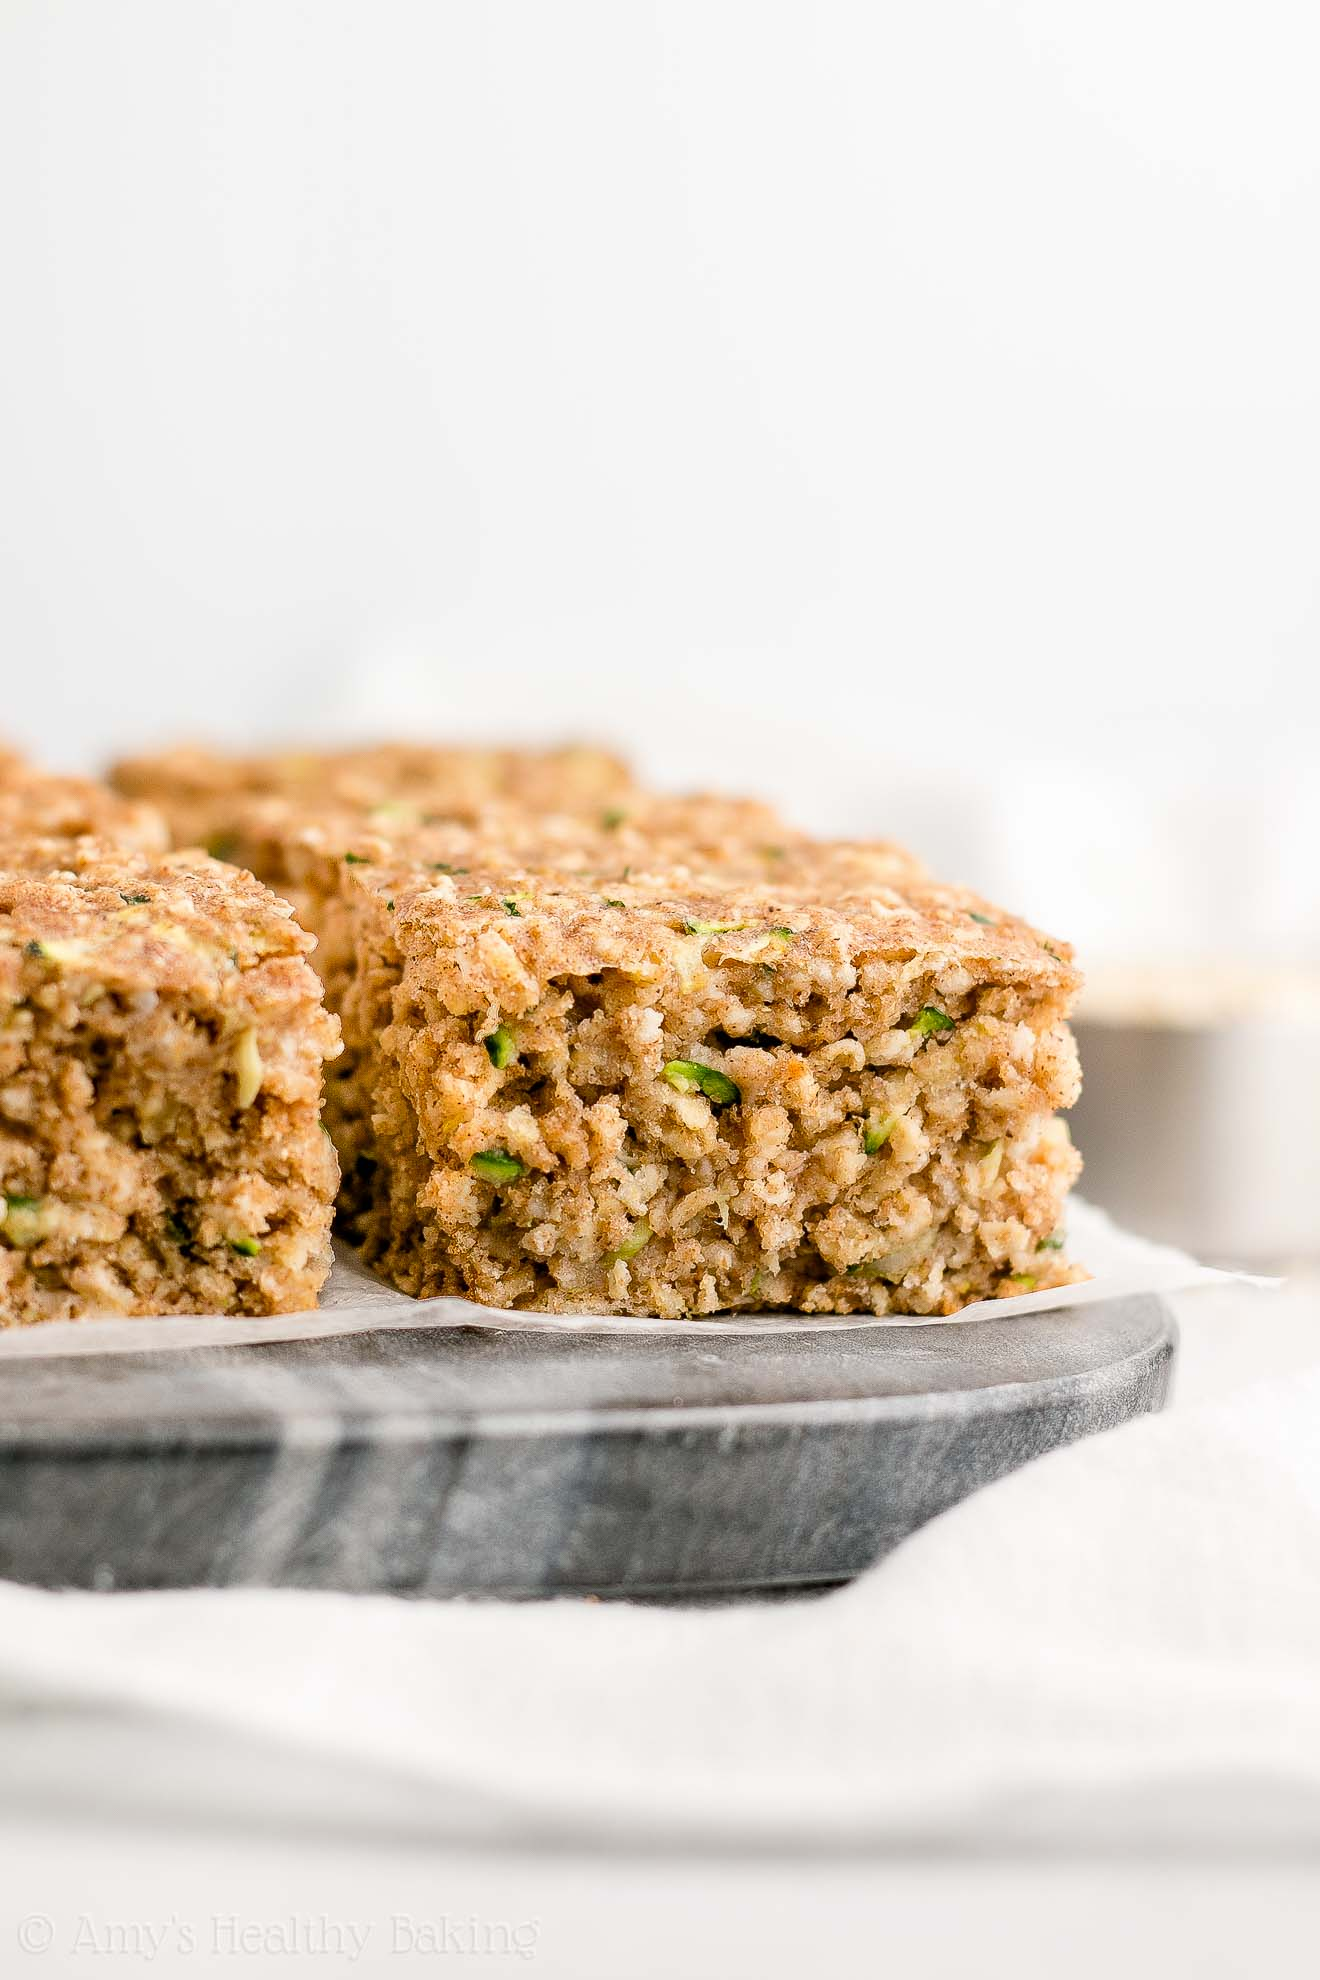 Moist and Healthy Zucchini Oatmeal Snack Cake for kids and adults